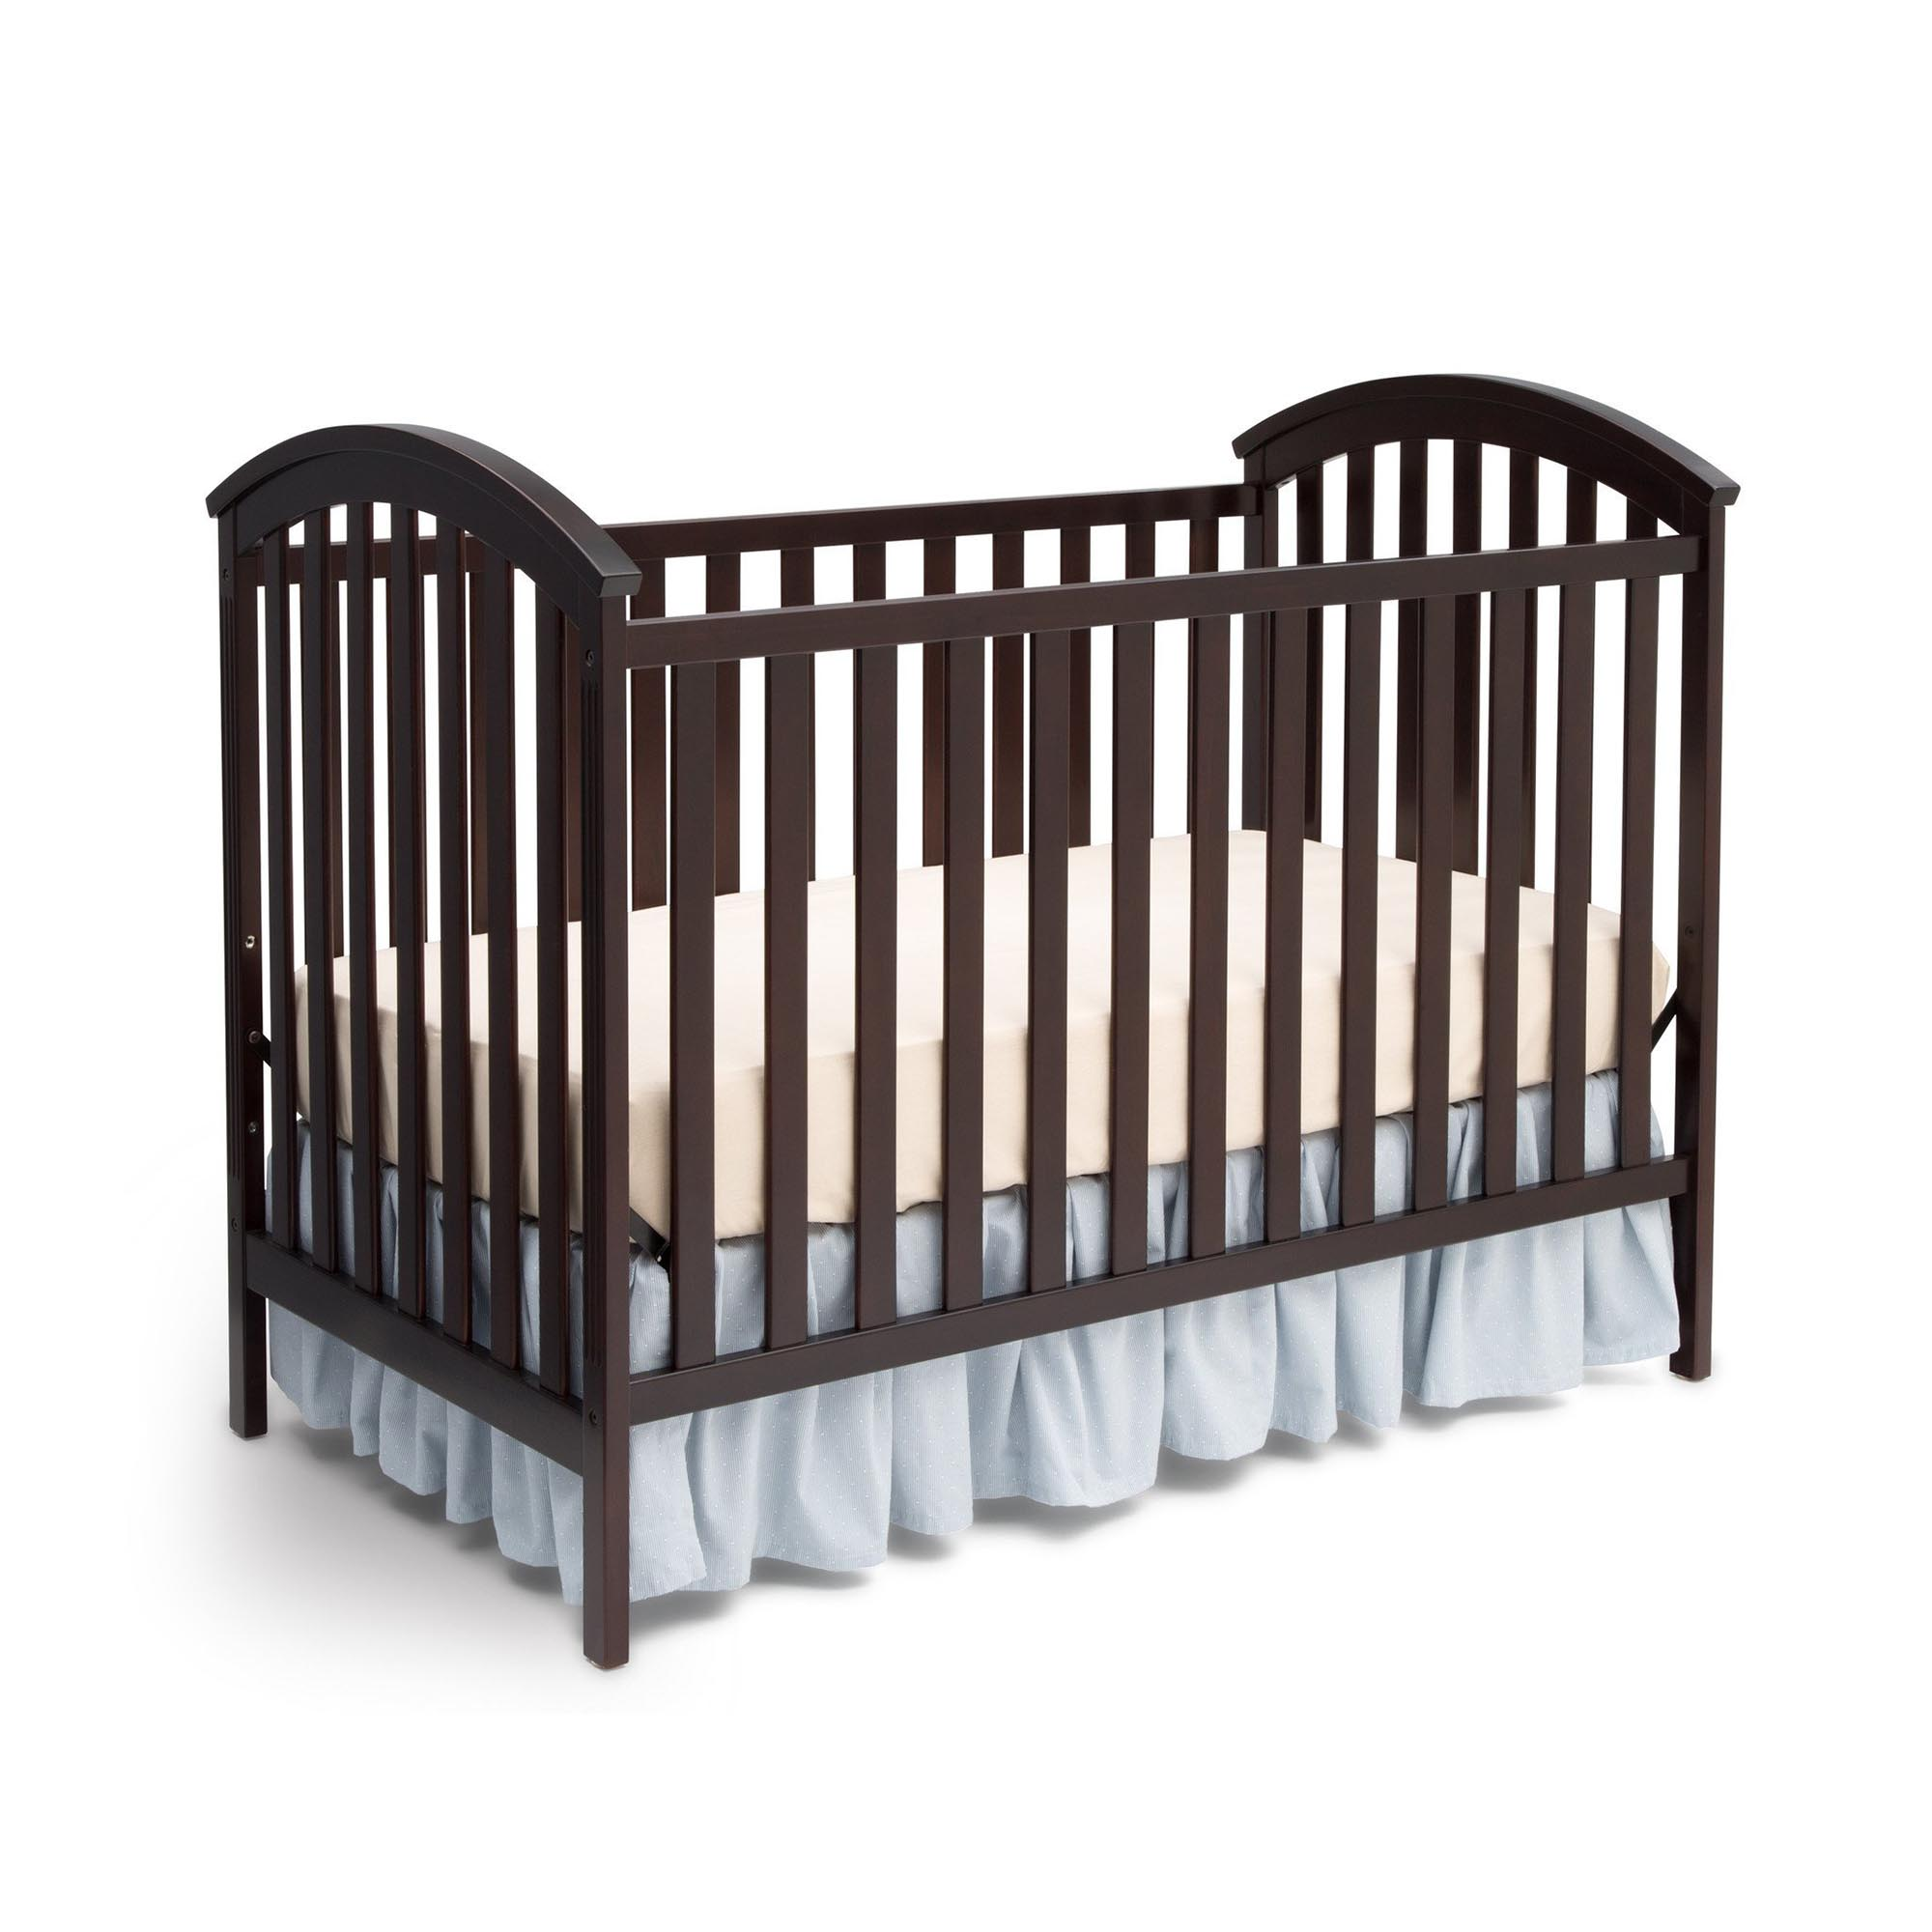 easton garden shipping crib cribs children convertible in overstock free s delta home product today